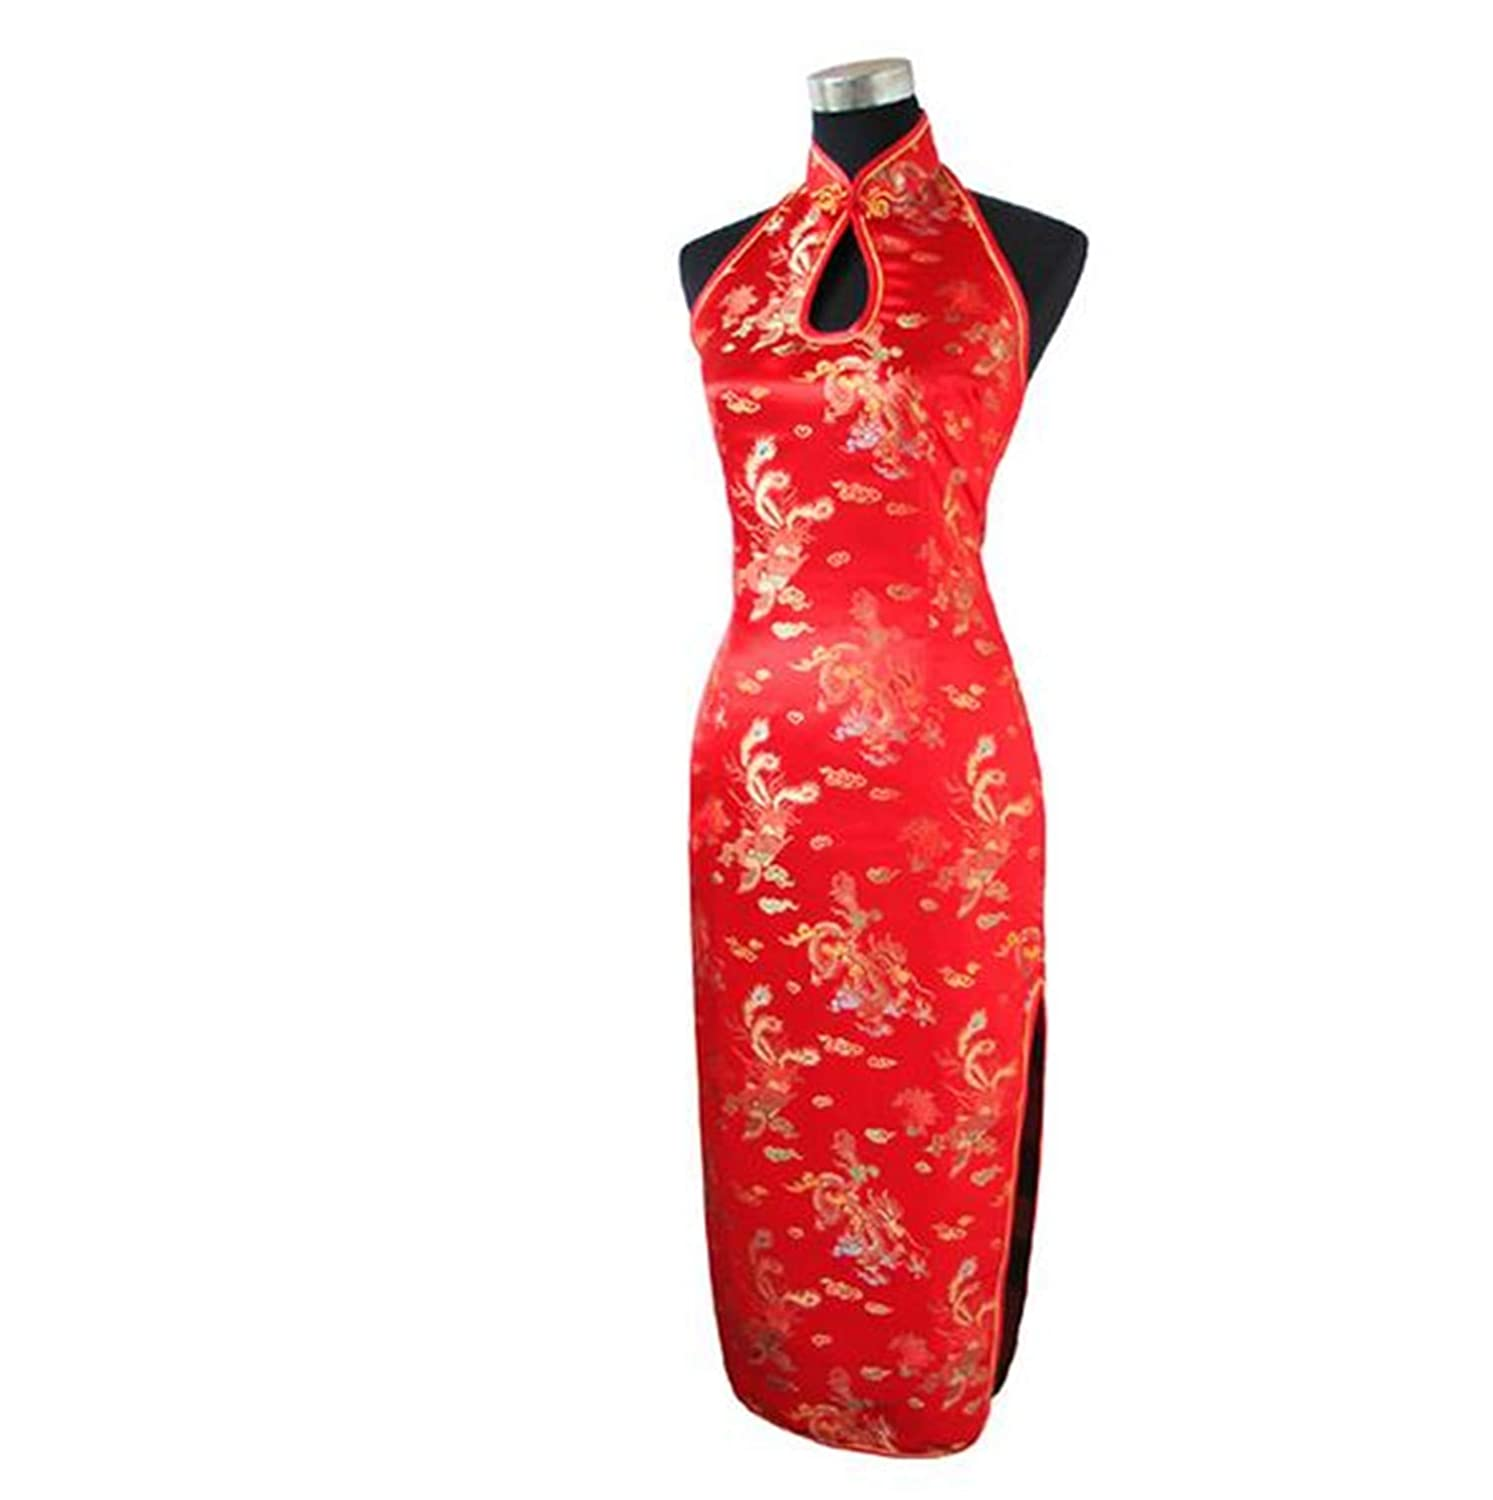 589caea90 Sexy Burgundy Backless Traditional Chinese Dress Long Halter Cheongsam  Qipao Novelty Black M: Amazon.co.uk: Clothing